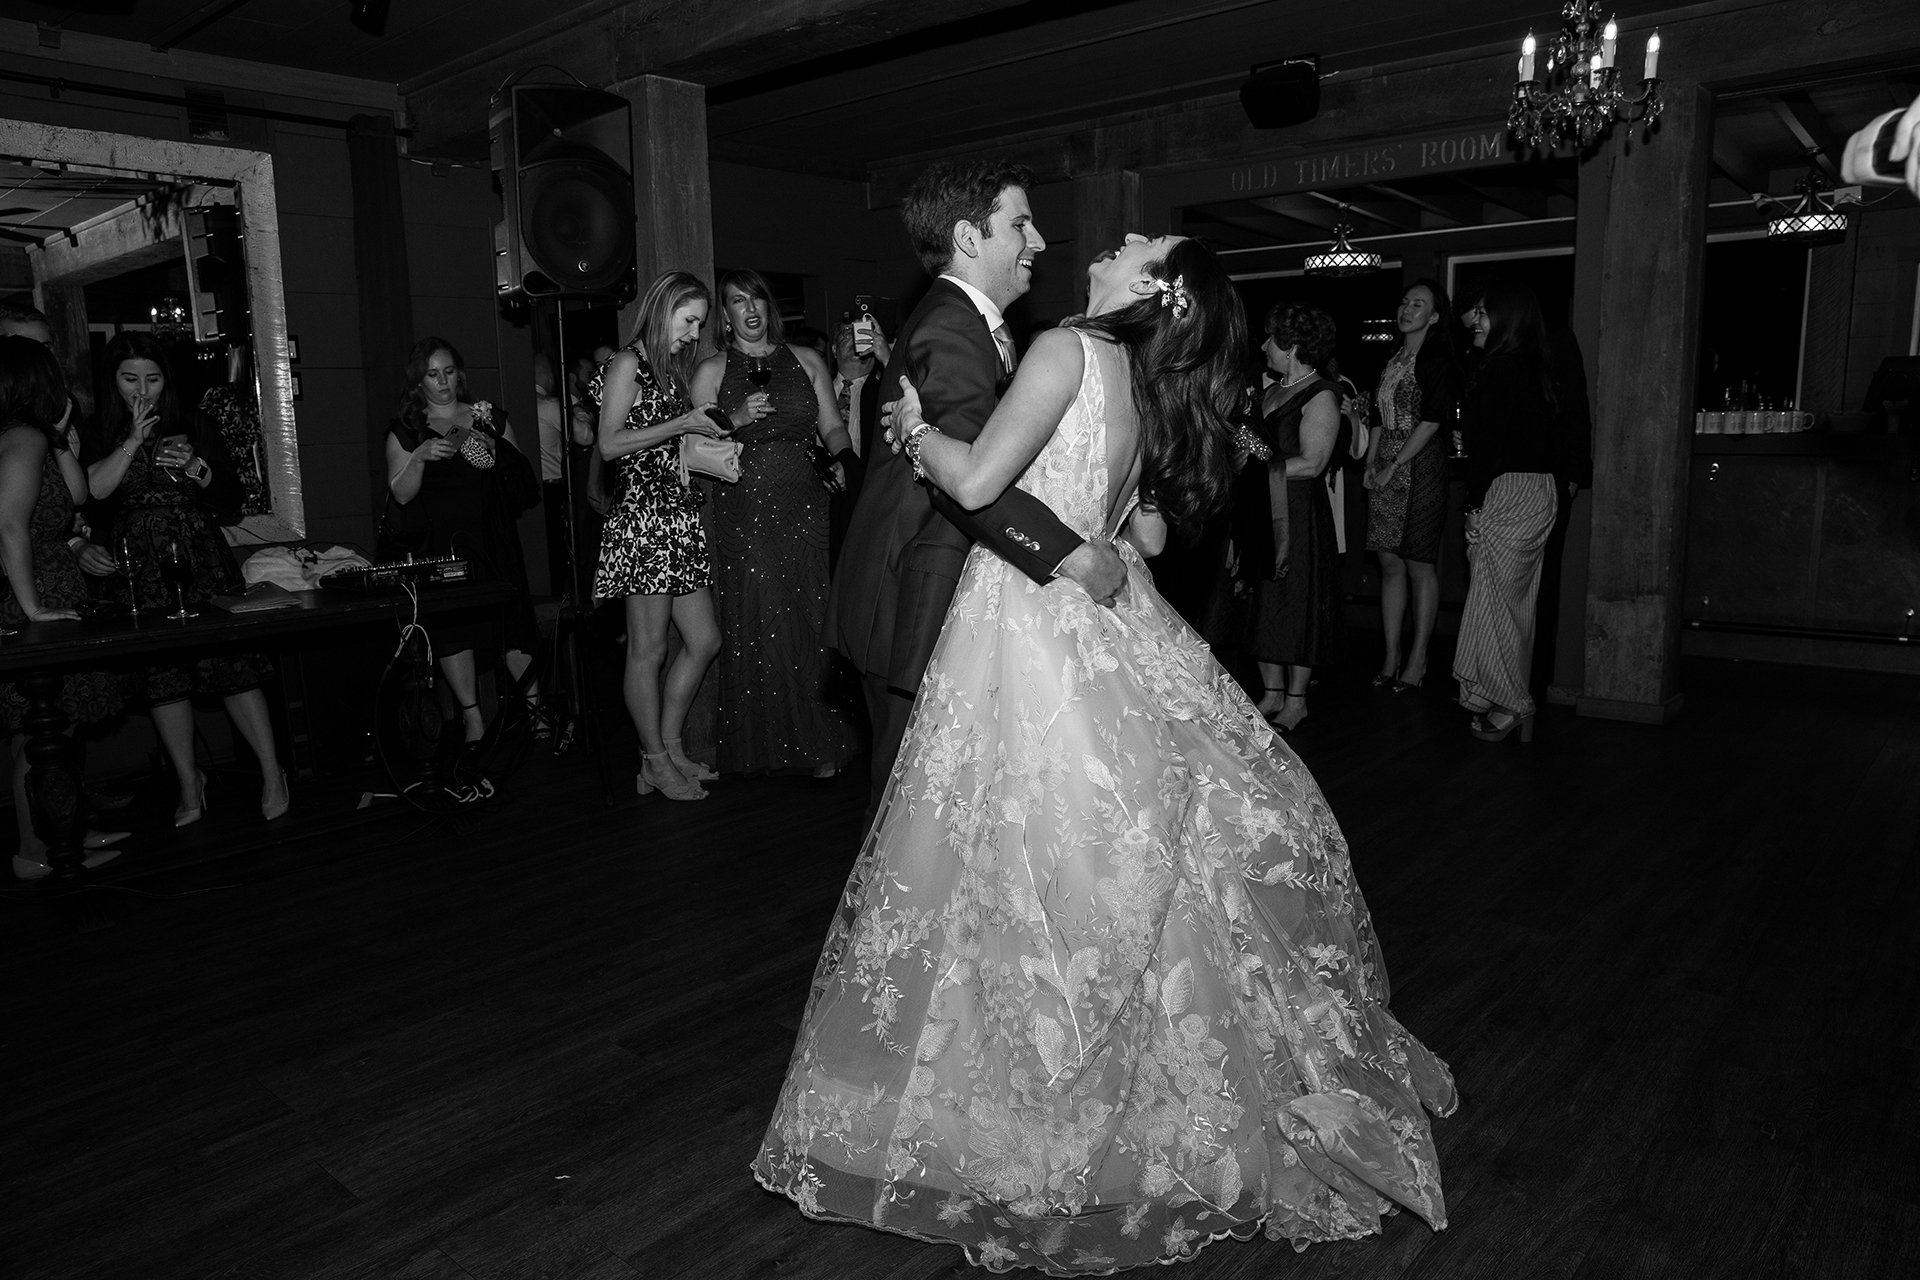 California Elopement Reception Venue Photo   bride and groom hit the dance floor for the first time